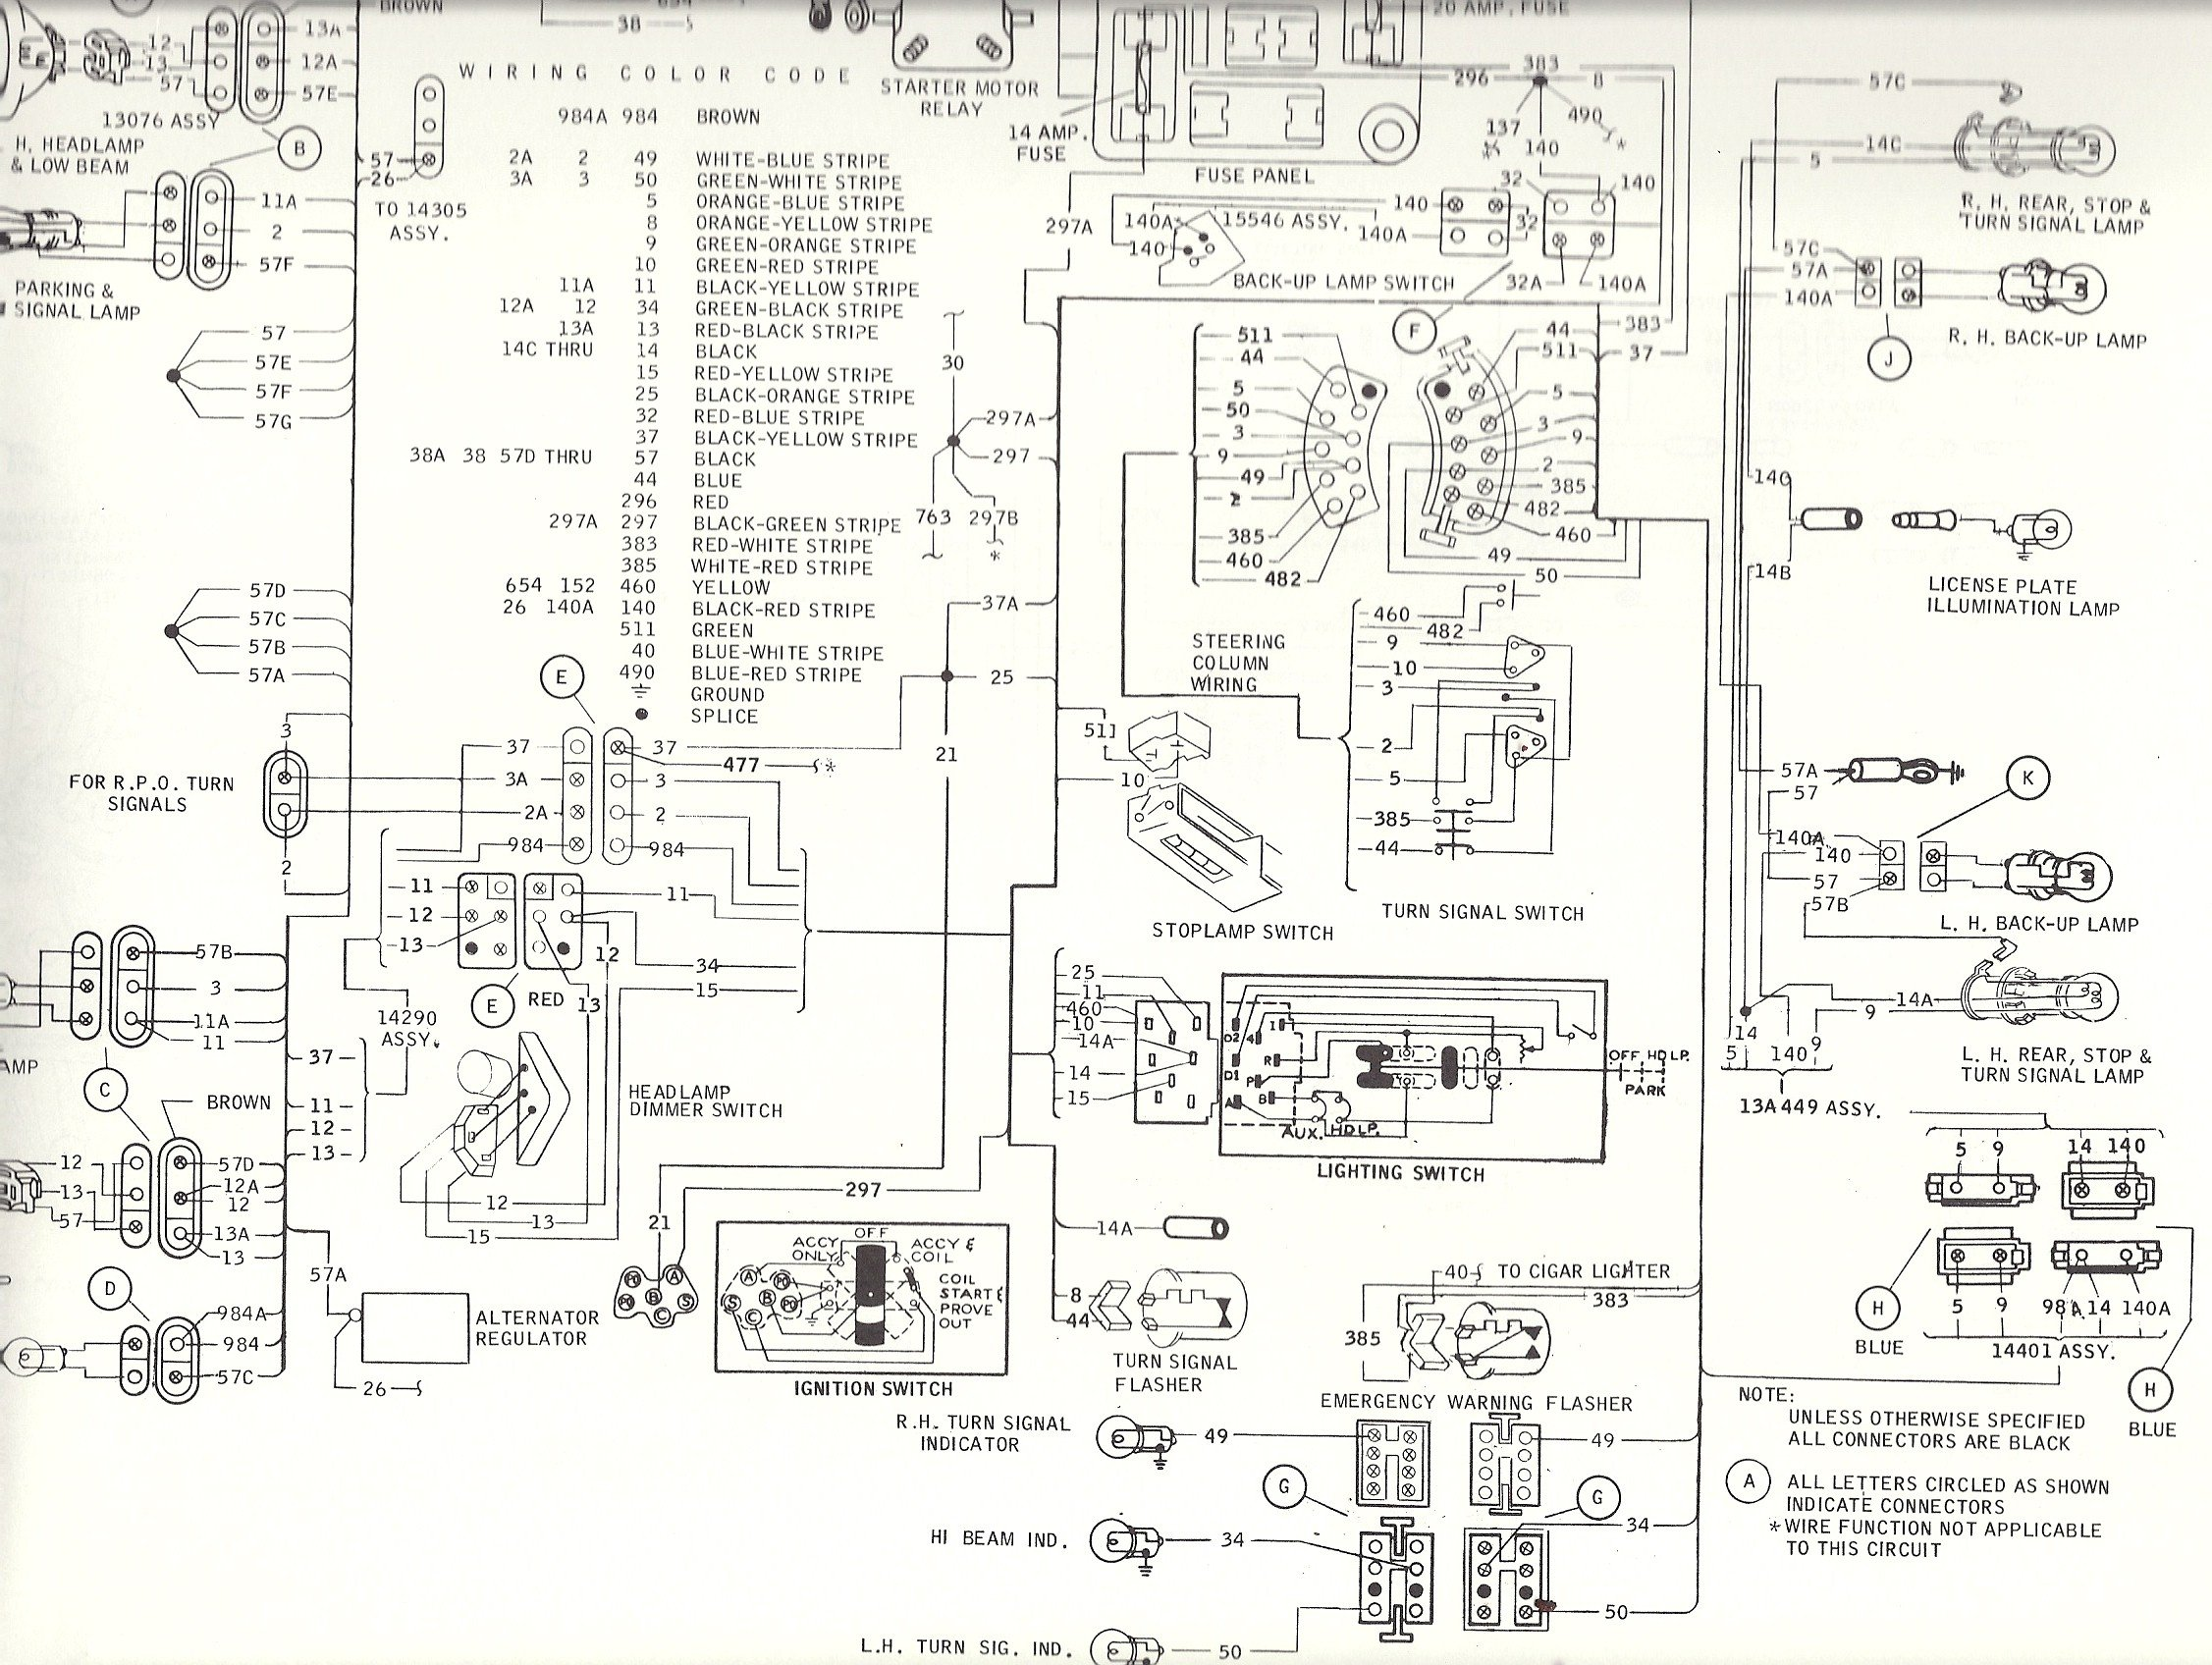 66 Ford Mustang Ignition Switch Wiring Diagram